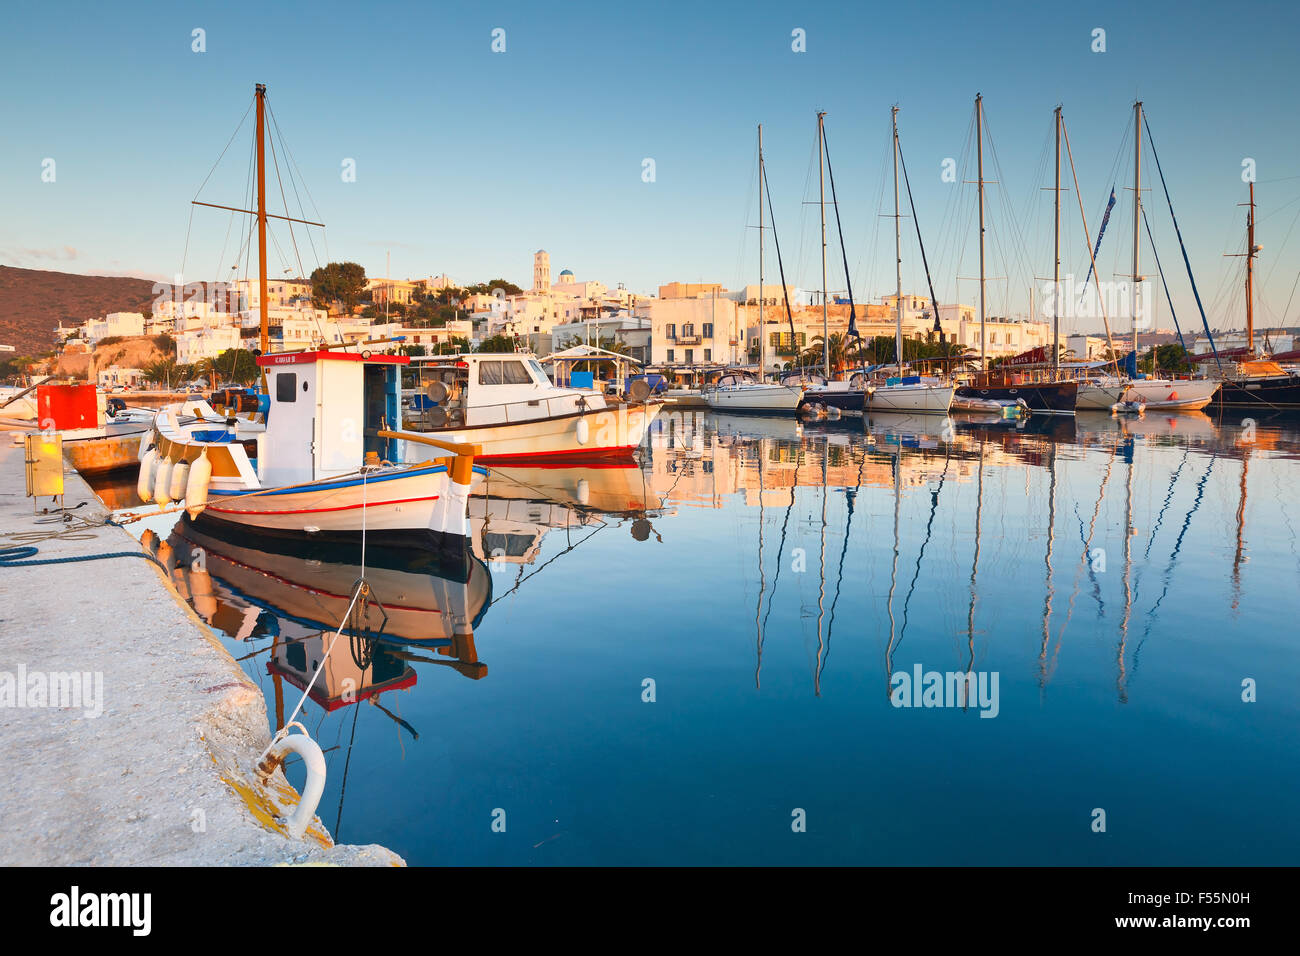 Fishing boats and sail boats in Adamantas harbour on early morning - Stock Image